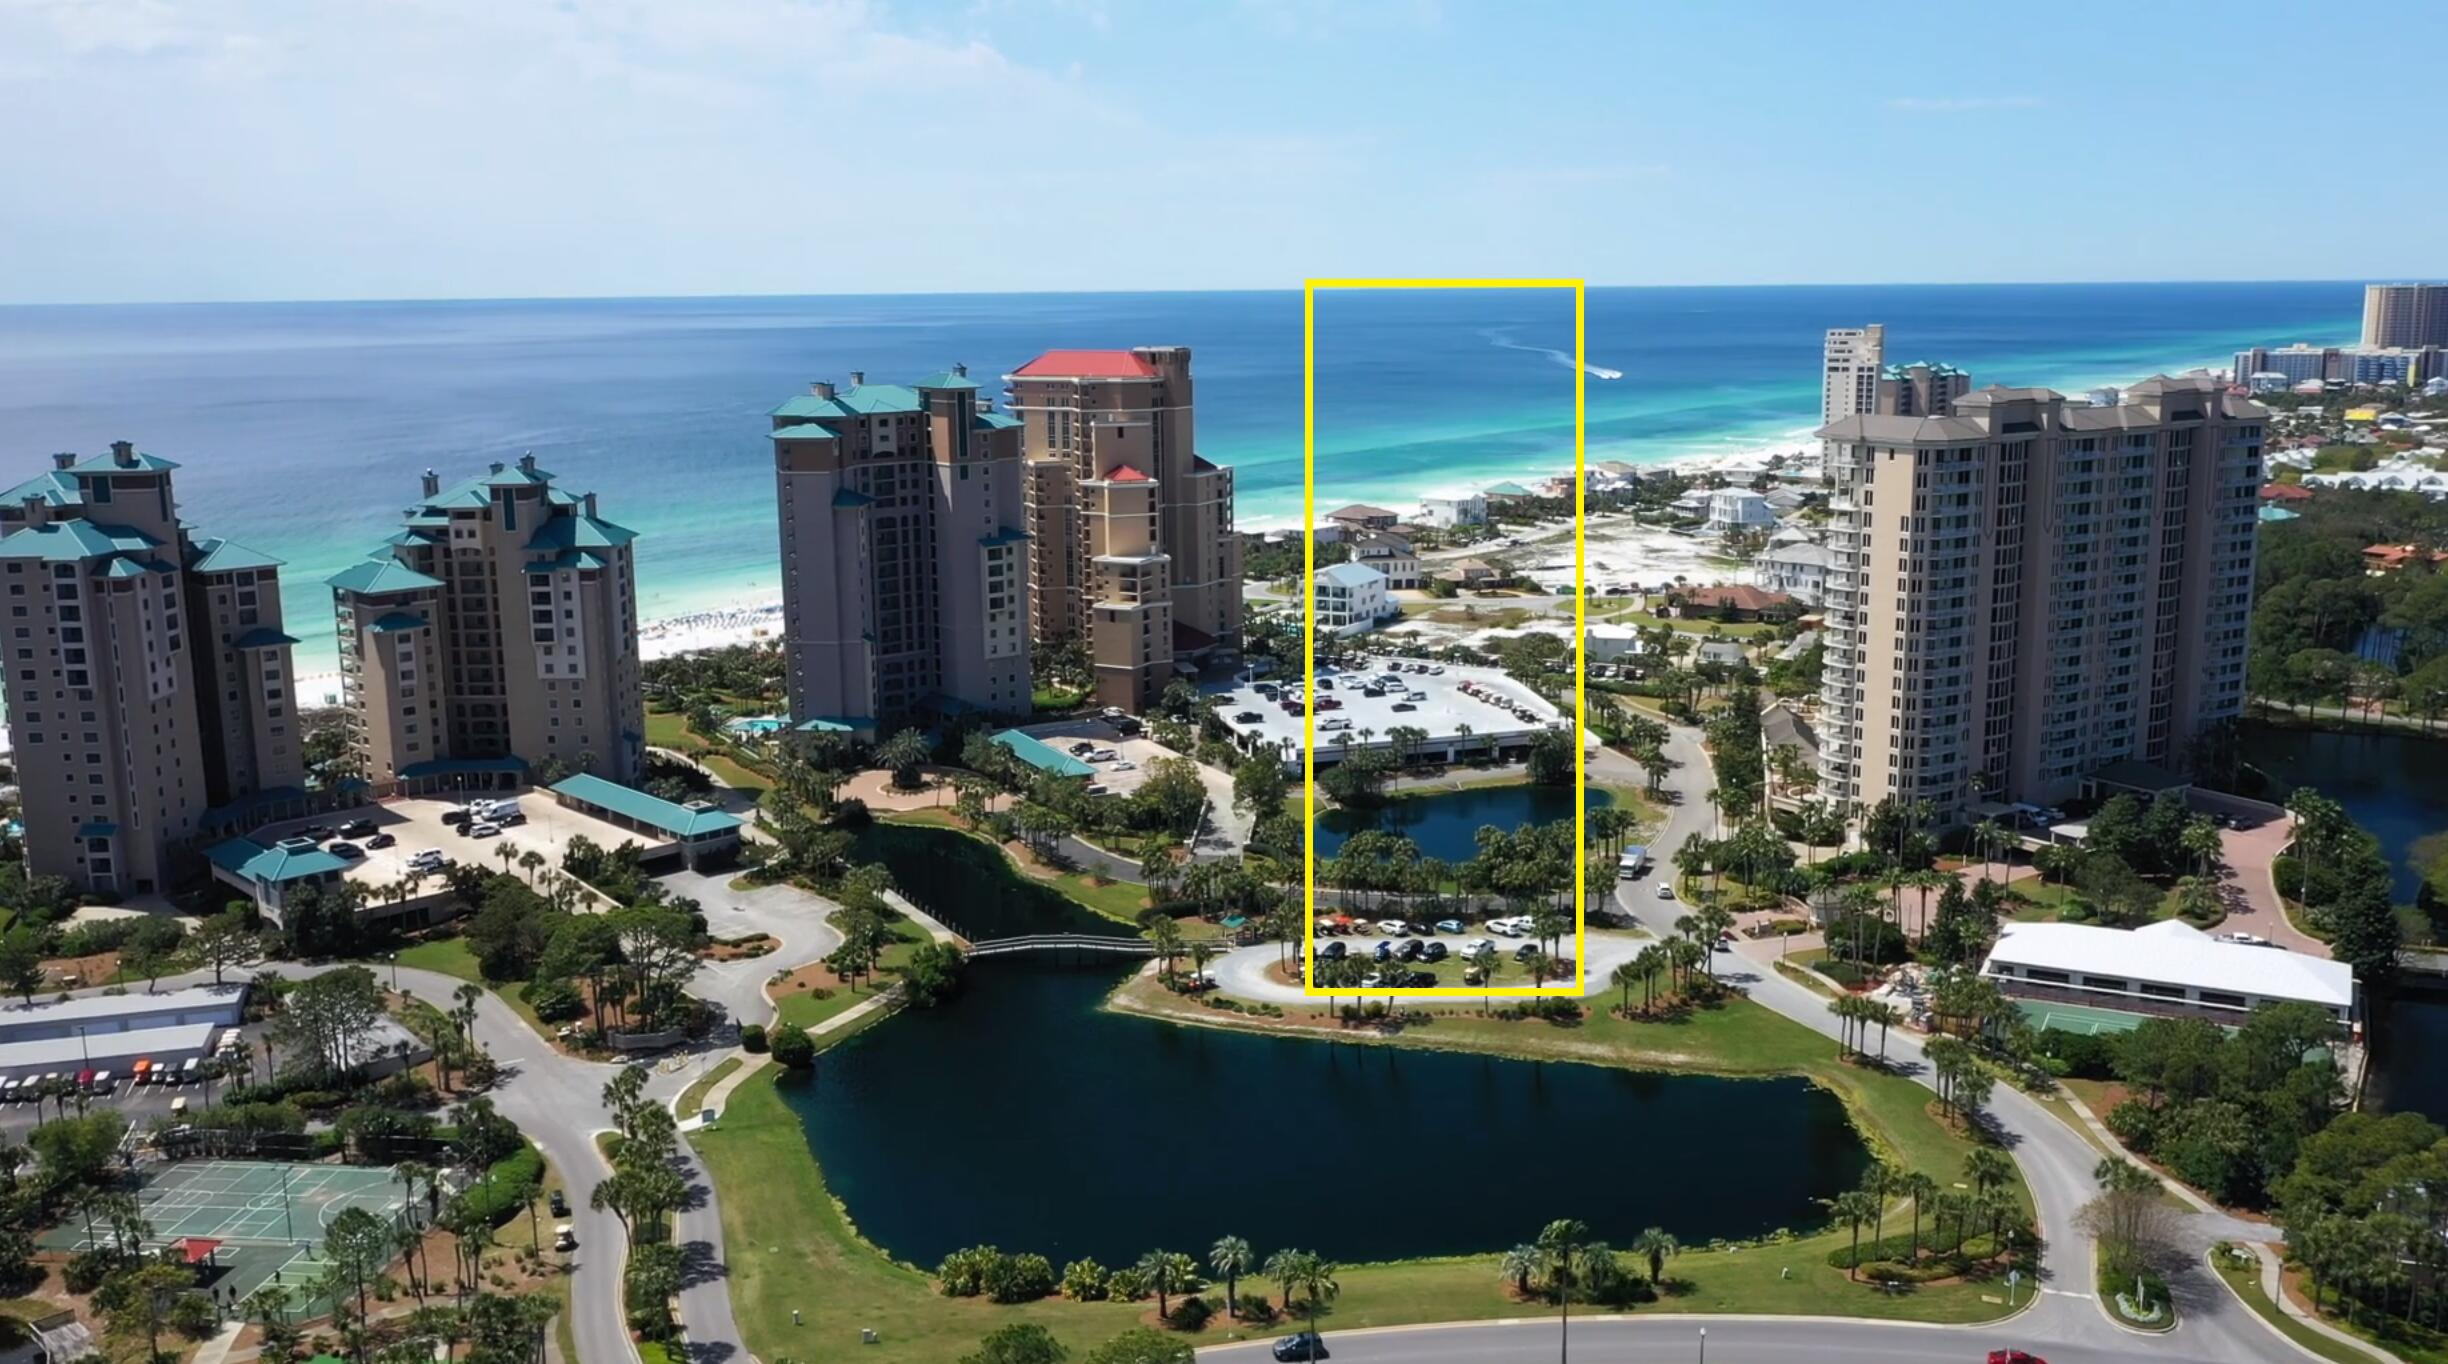 The Cascade at Sandestin is a luxury pre-construction opportunity for the discerning purchaser. Each